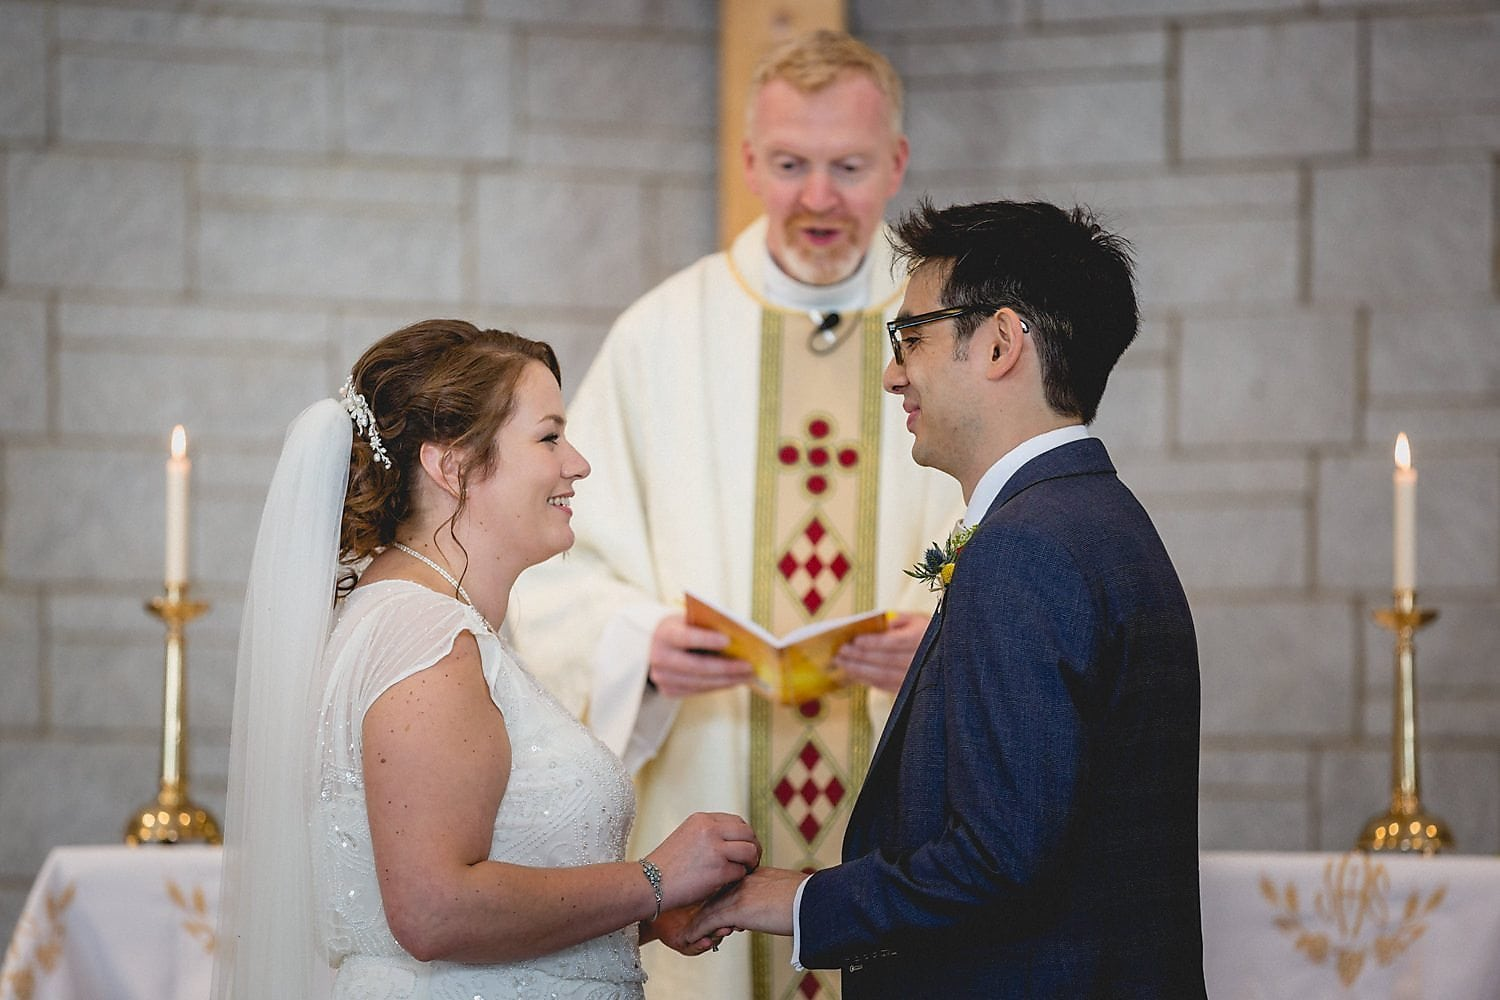 The priest conducts the ceremony as the couple smile at each other